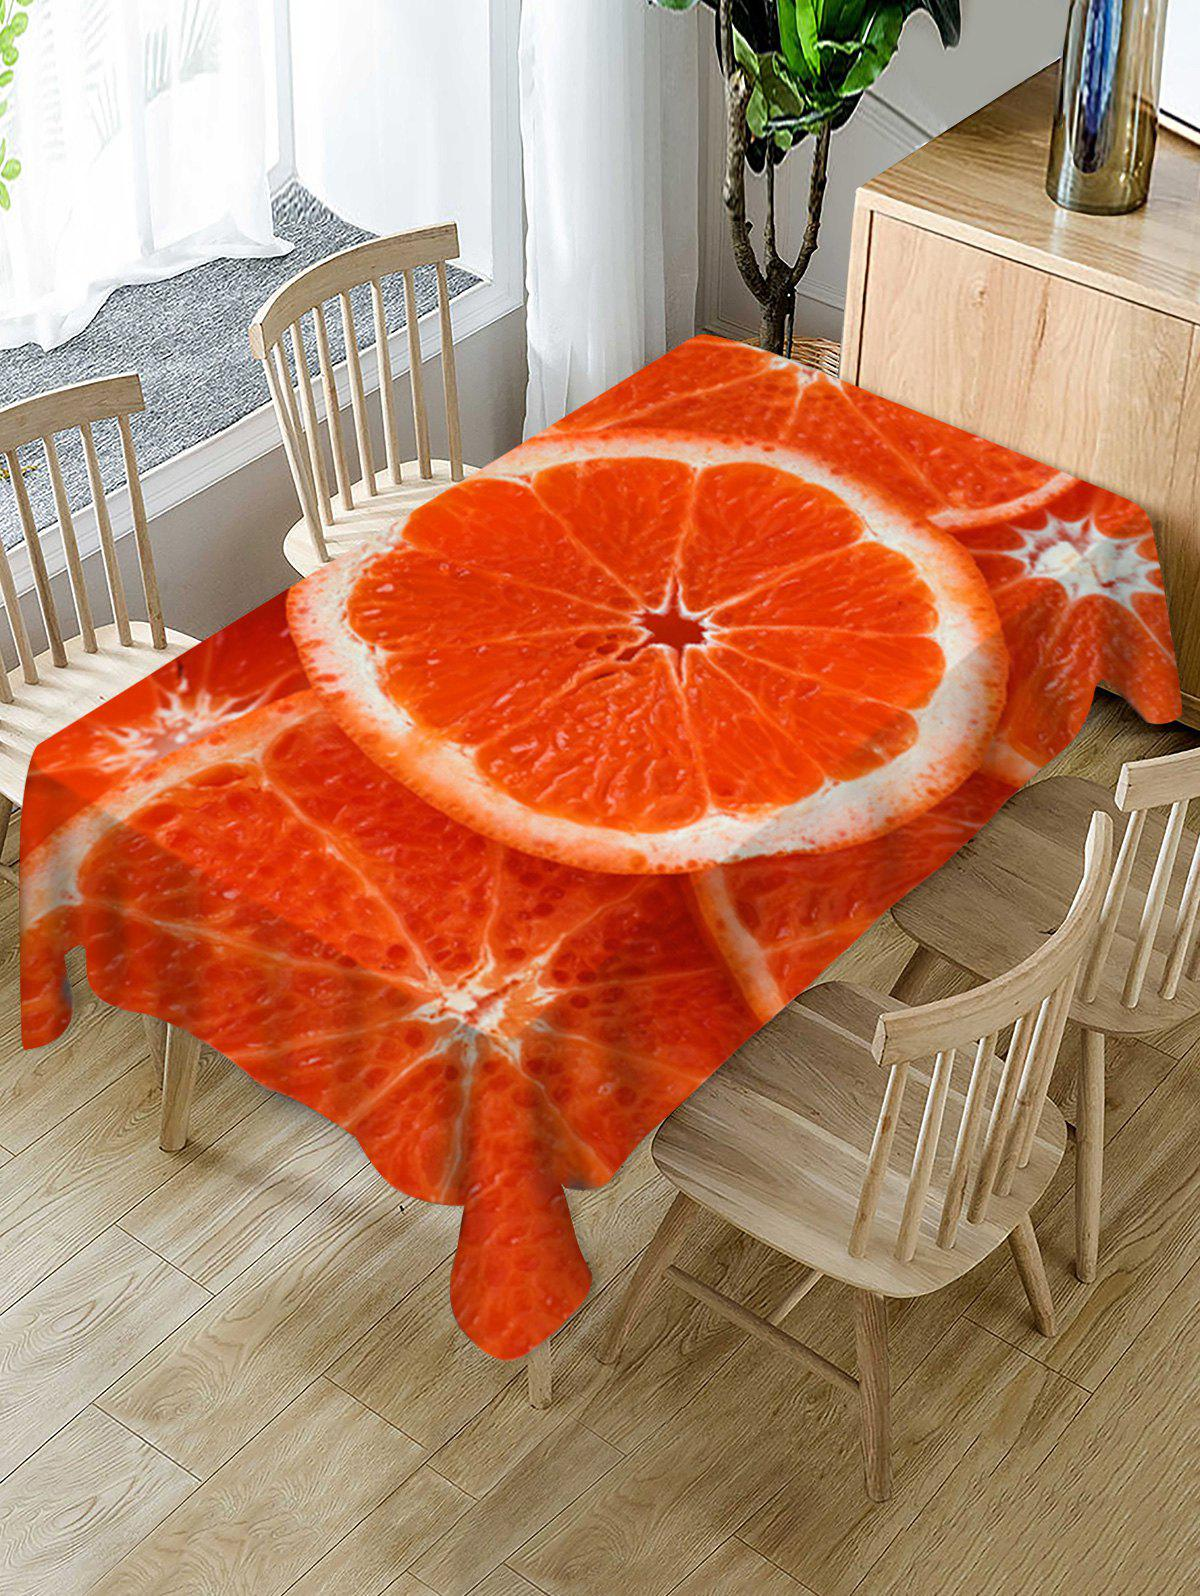 Outfits Orange Slices Print Decorative Table Cloth